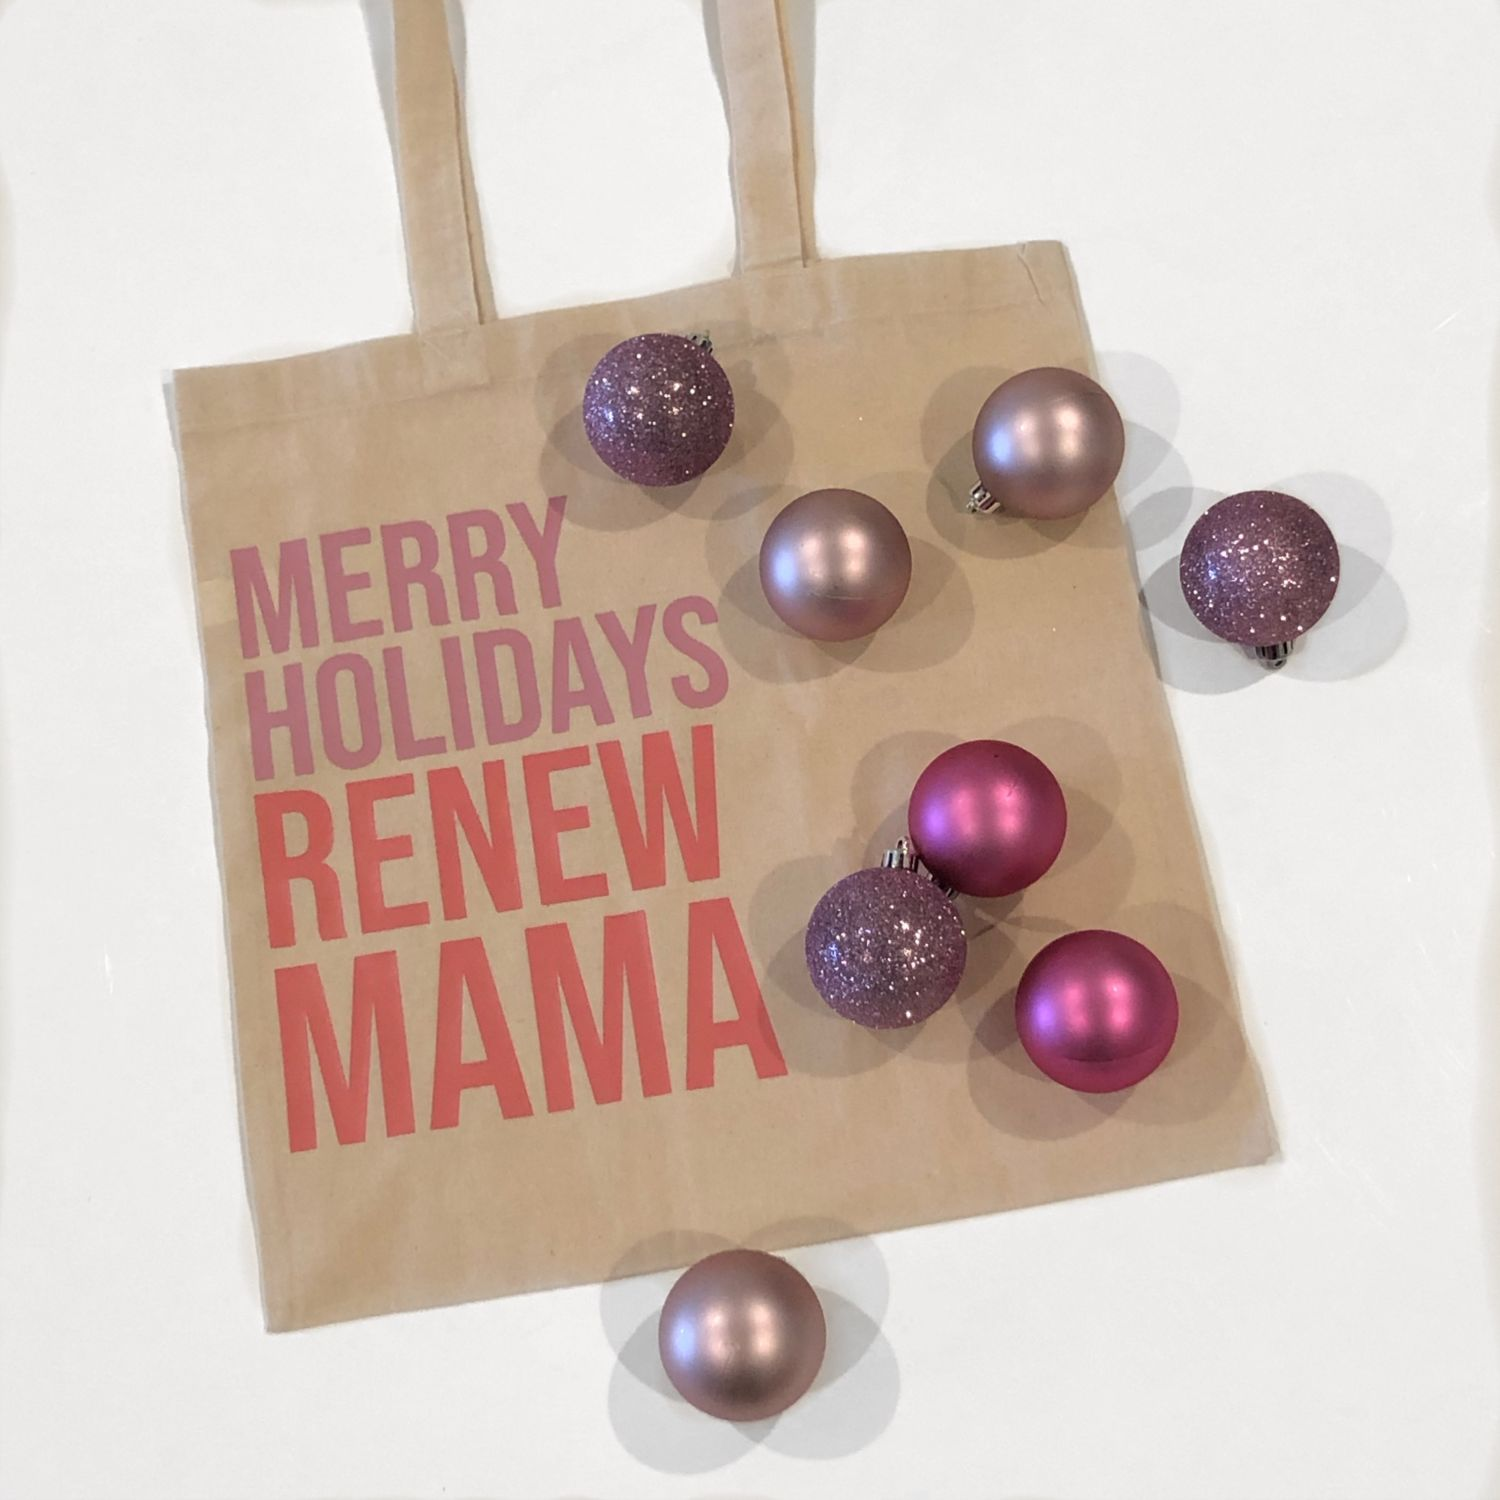 2019 Holiday Gift Guide for Moms